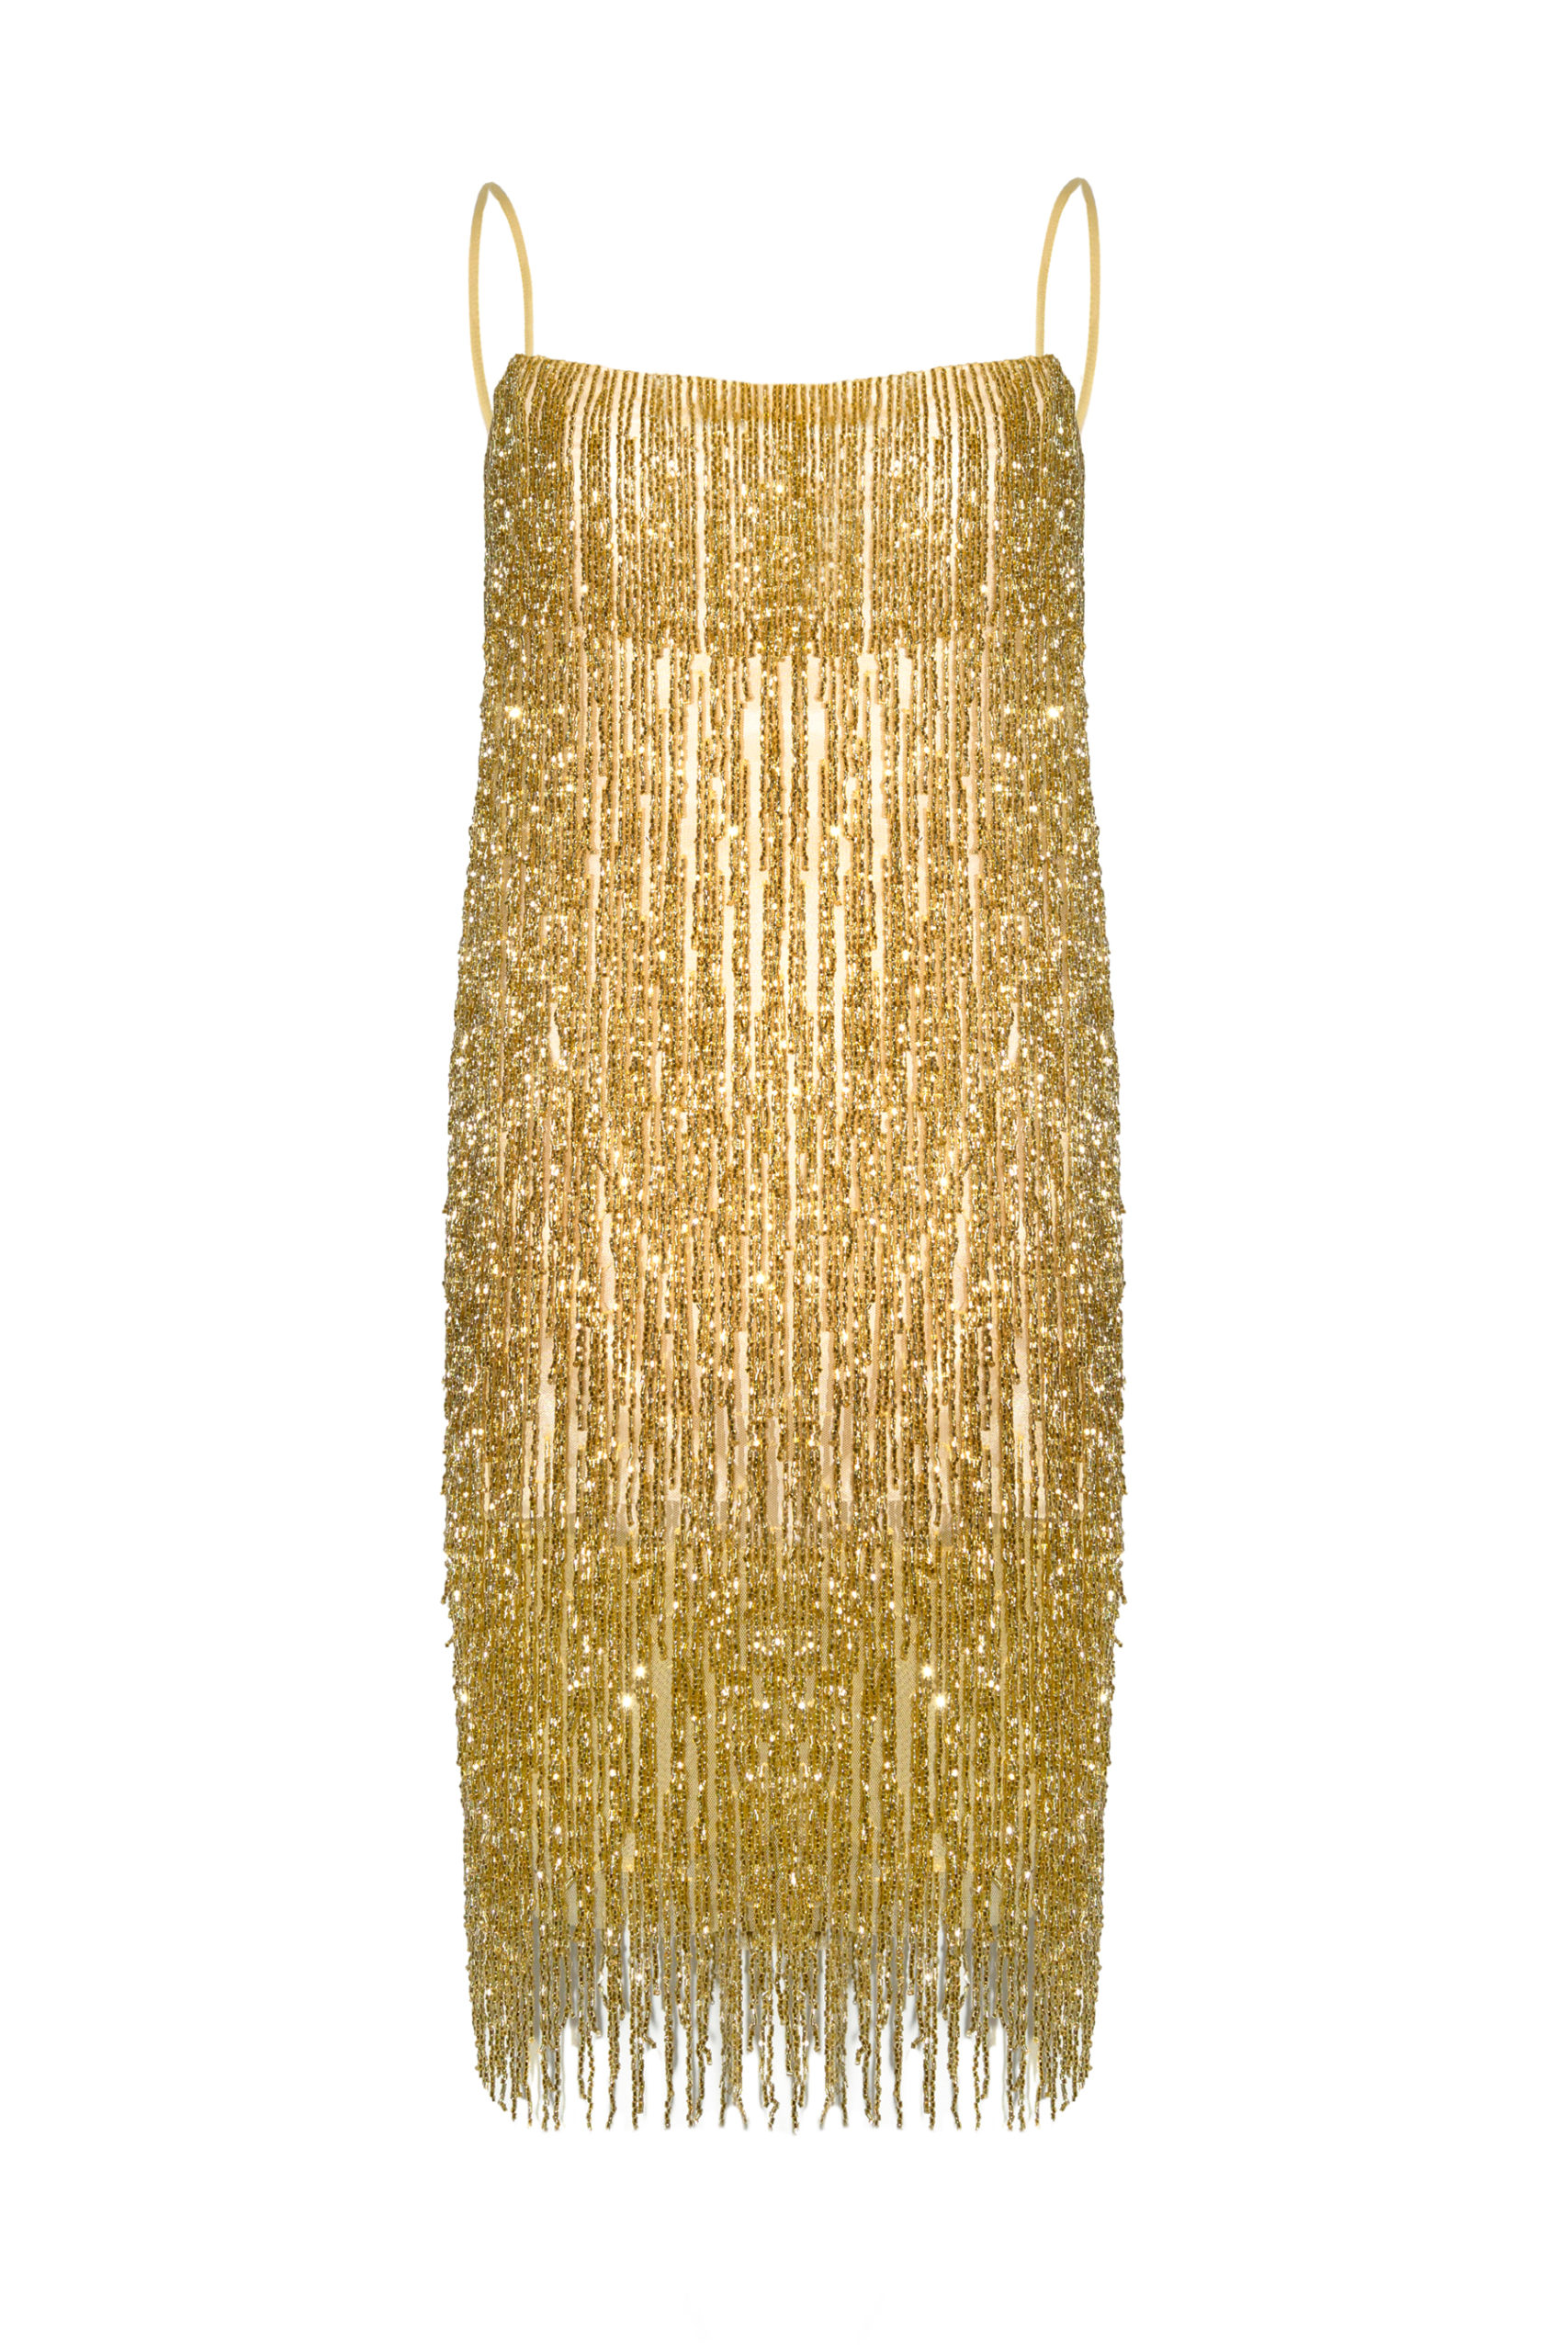 Vestido flecos ámbar dorado Crystal gold dress